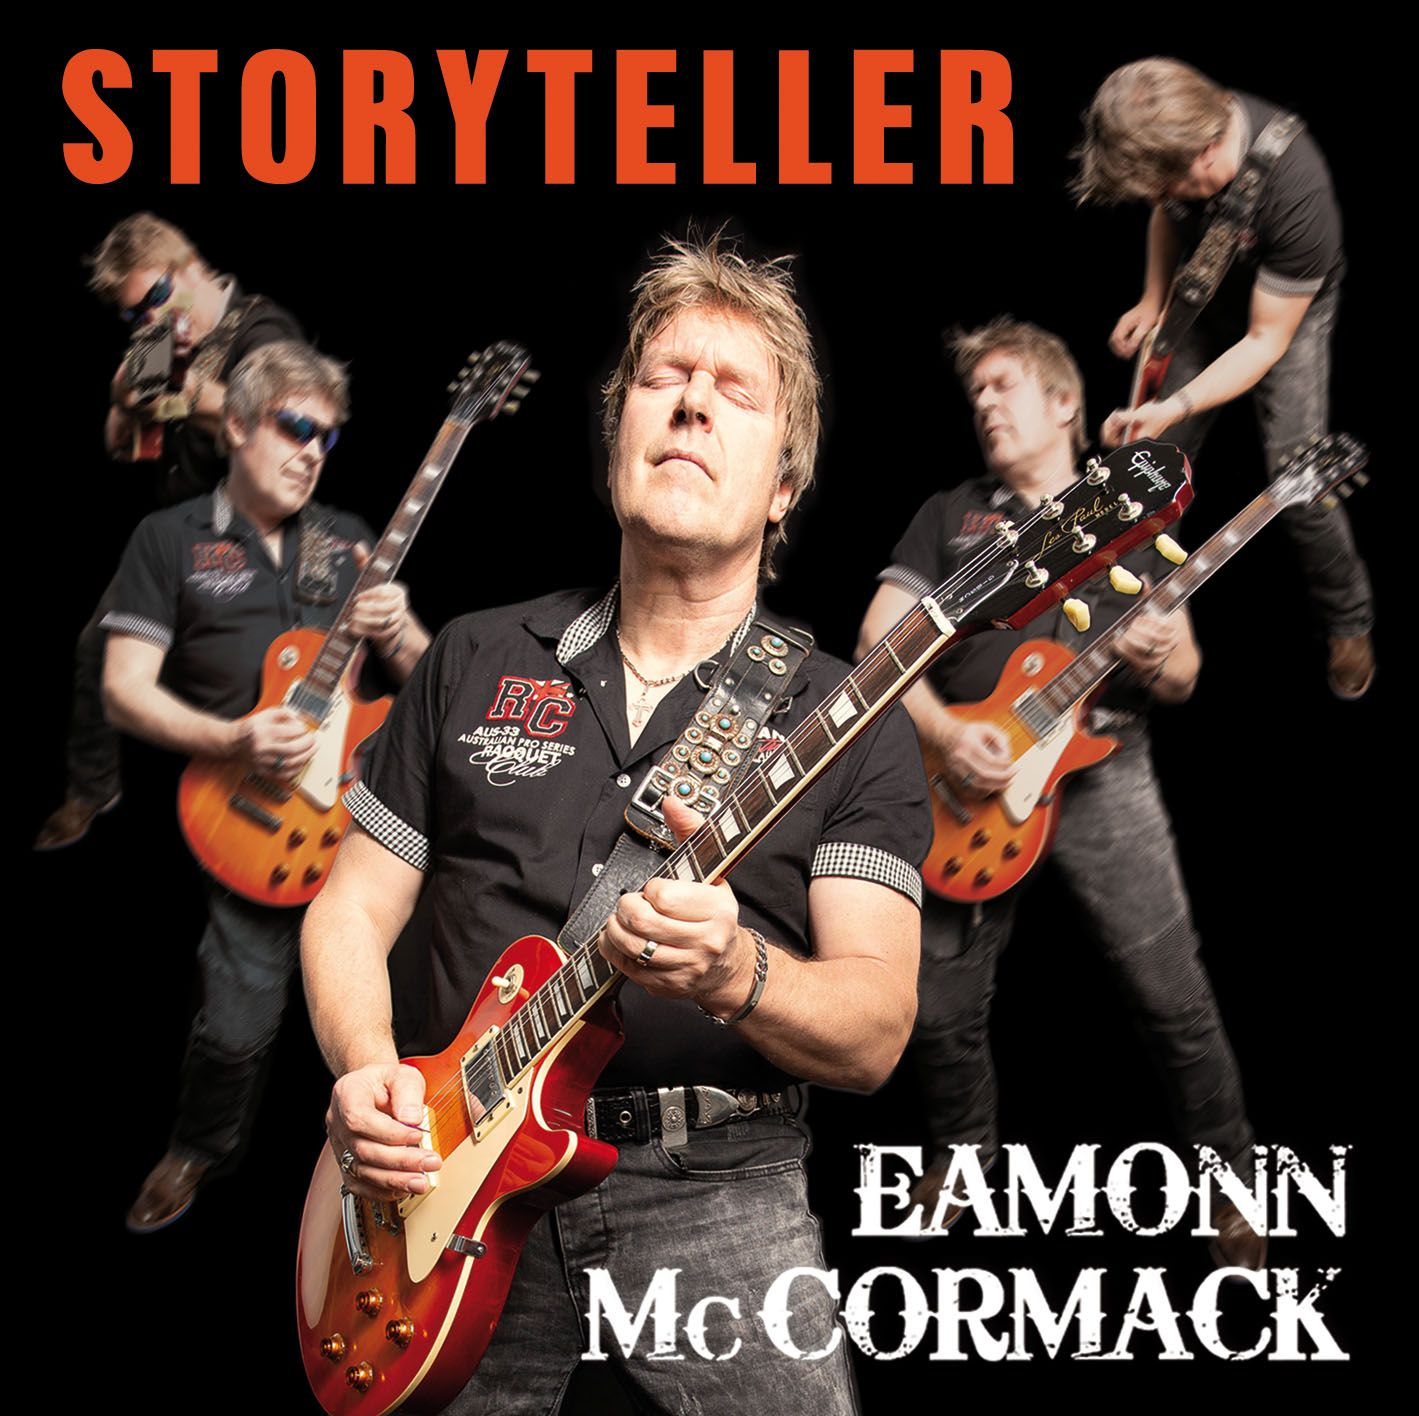 "Eamonn McCormack Is a Pure ""Storyteller"" on New Album"